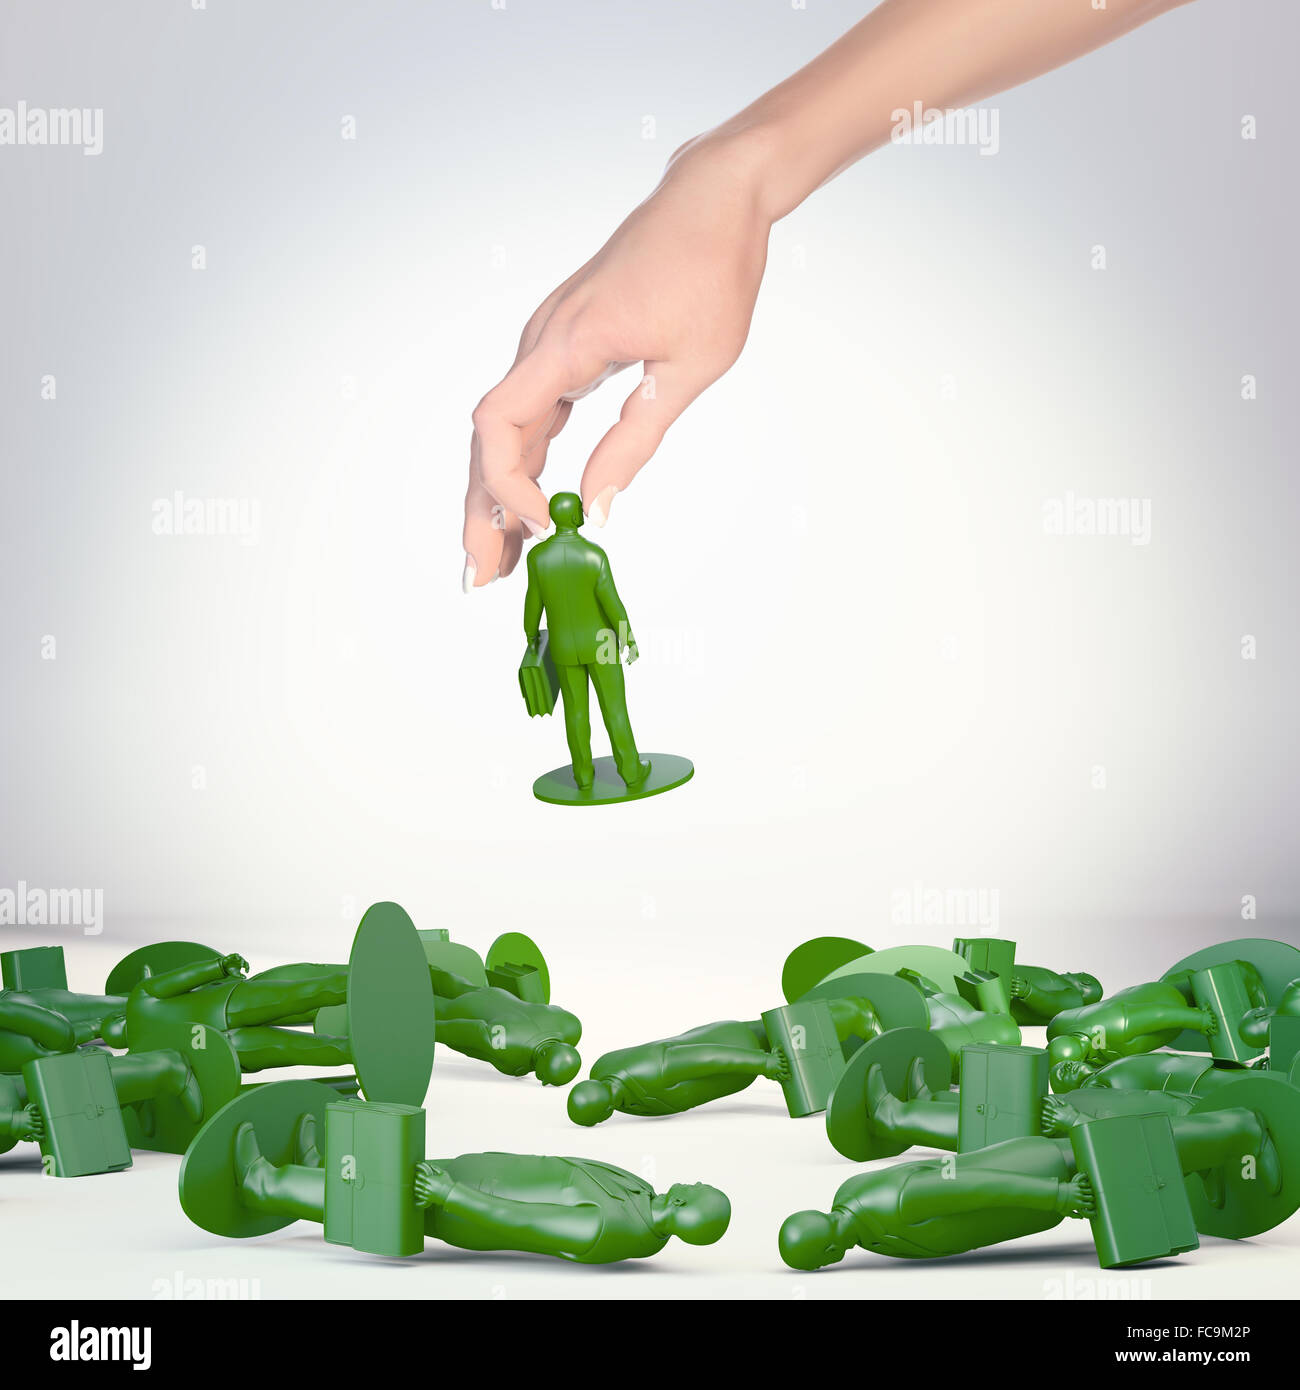 Toy businessman figures - success and carrier concept - Stock Image